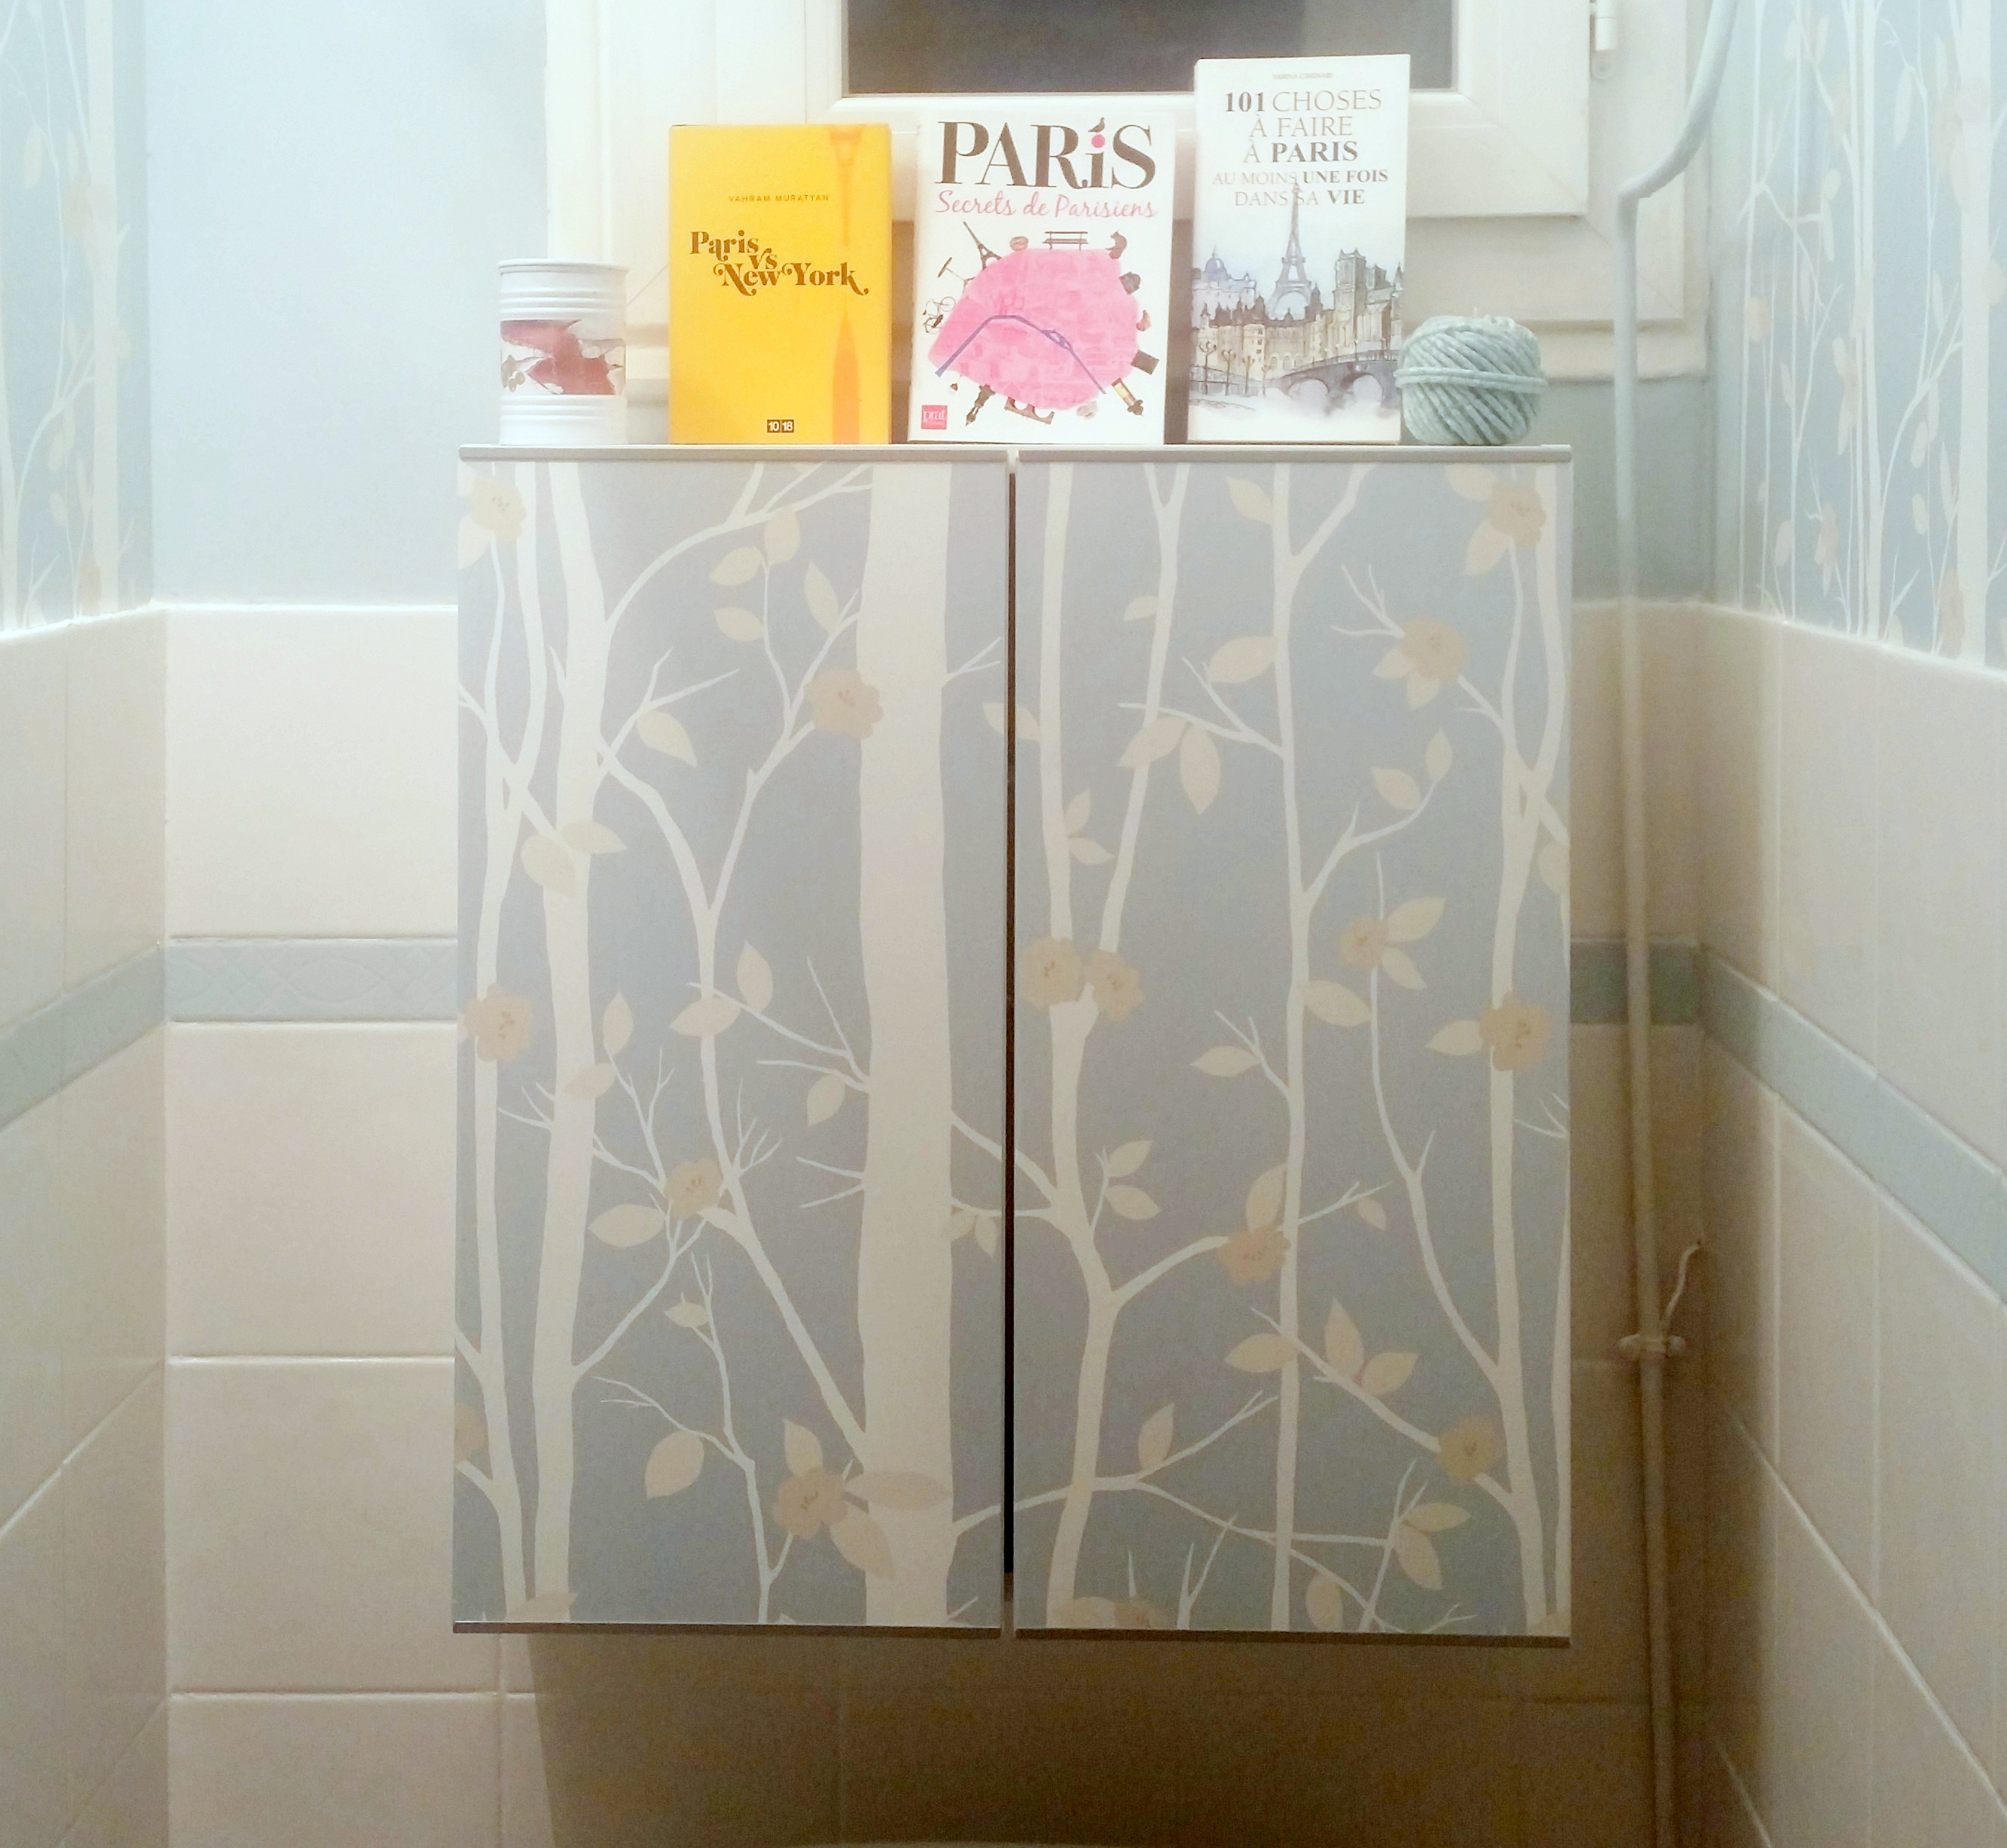 Diy customiser un meuble avec du papier peint p tisse for Papier a coller sur meuble